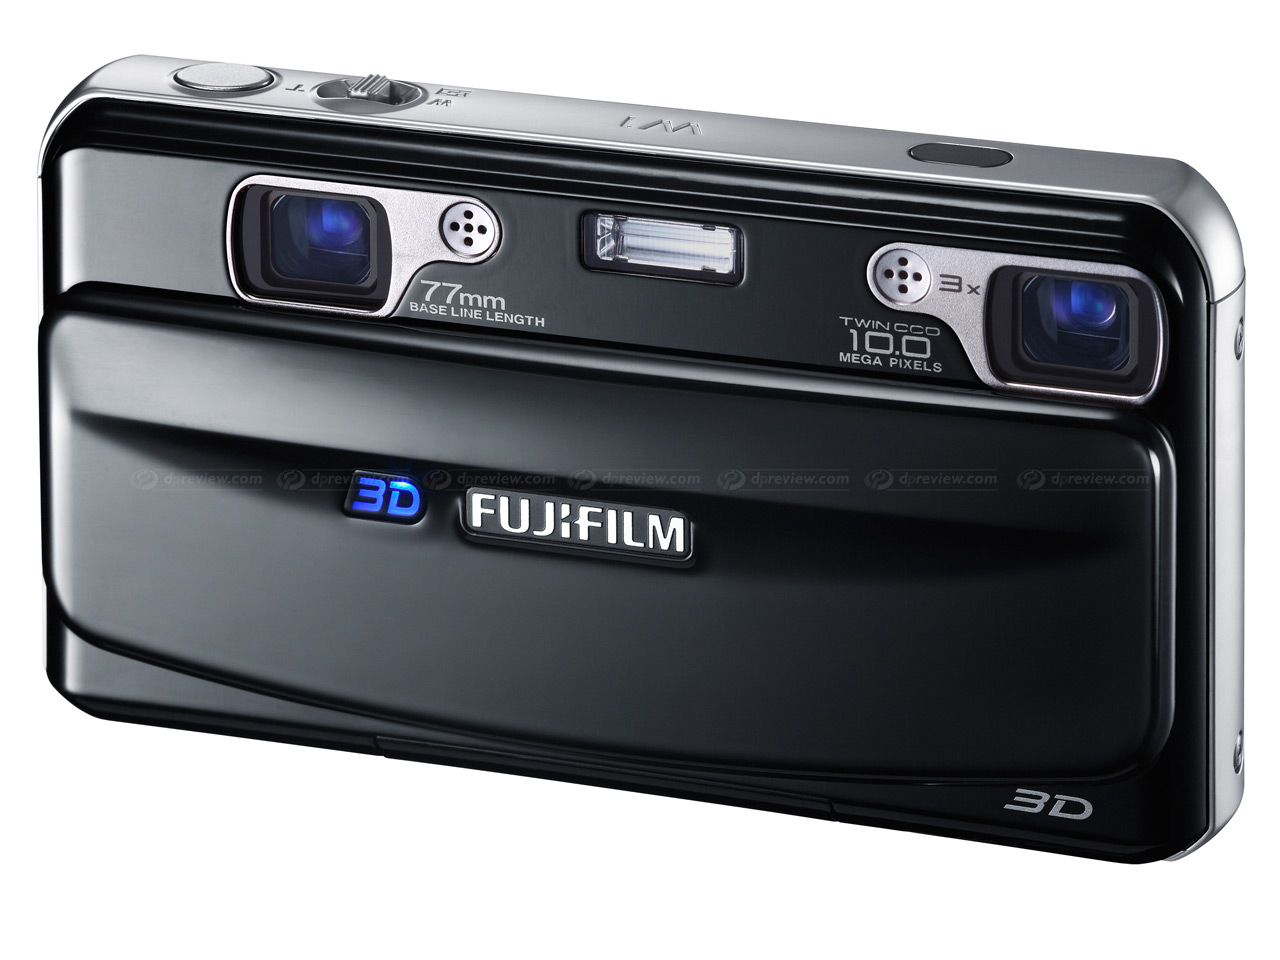 Fujifilm launches world's first 3D imaging system: Digital ...